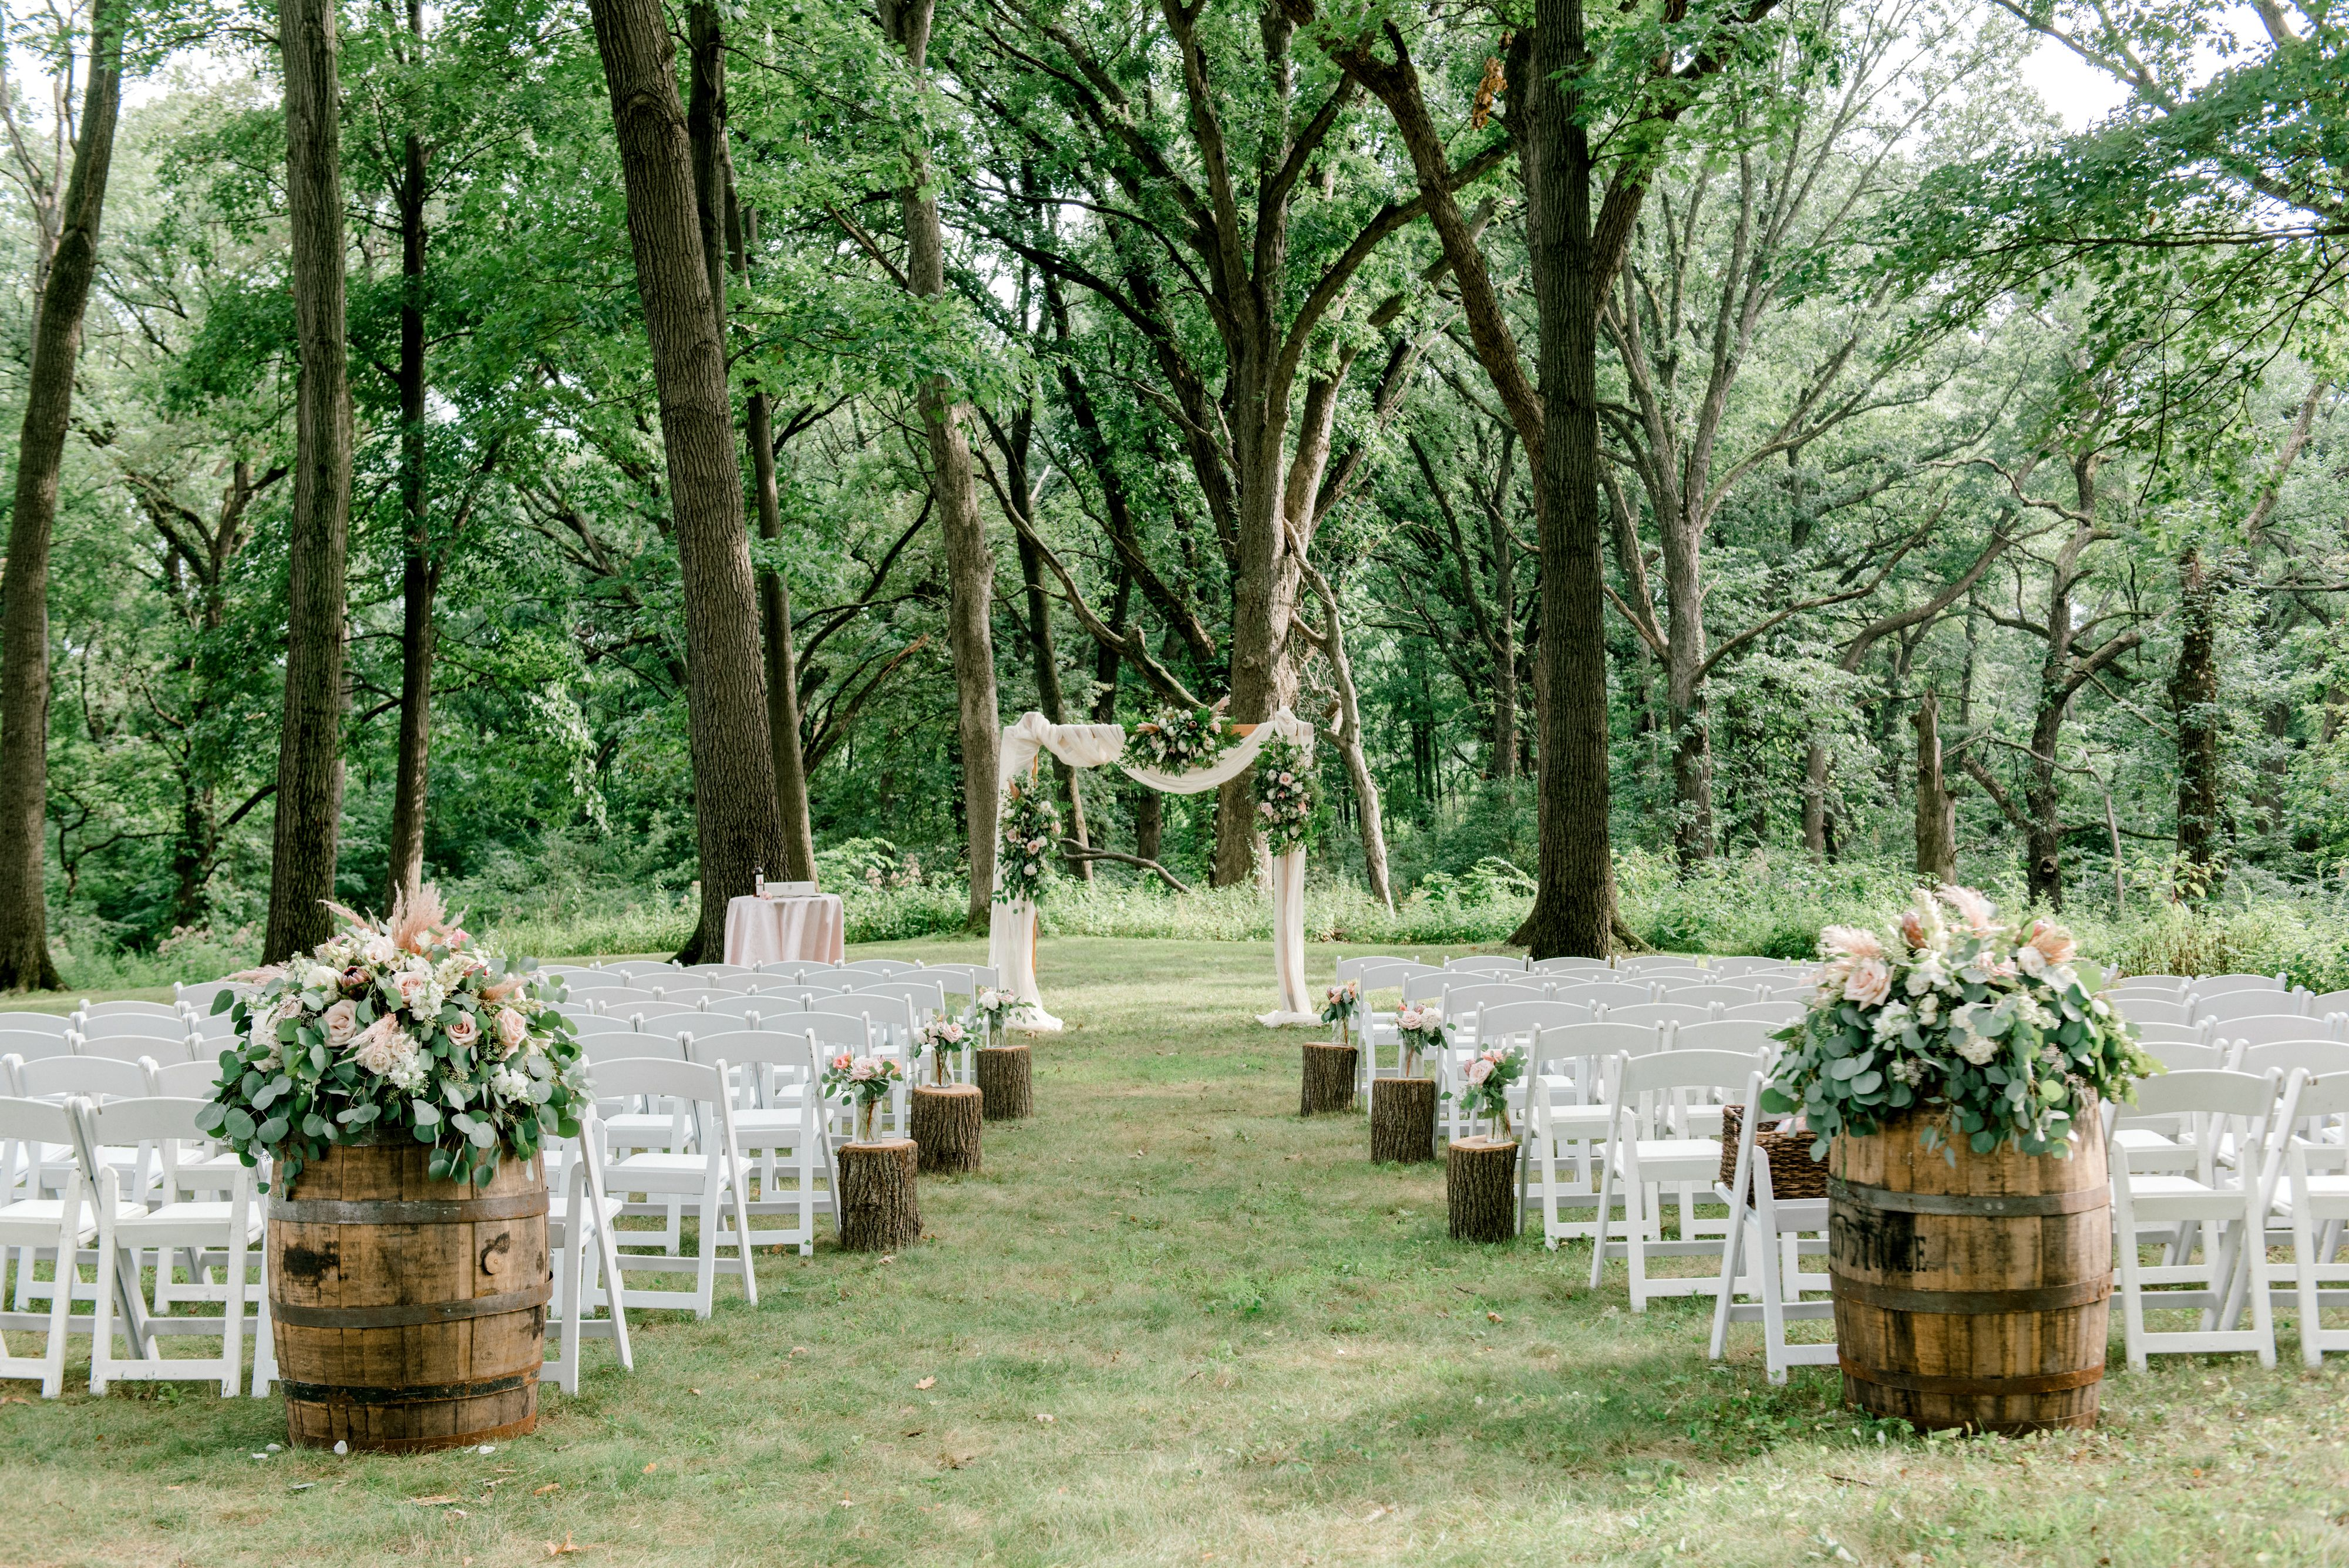 outdoor ceremony space in forest